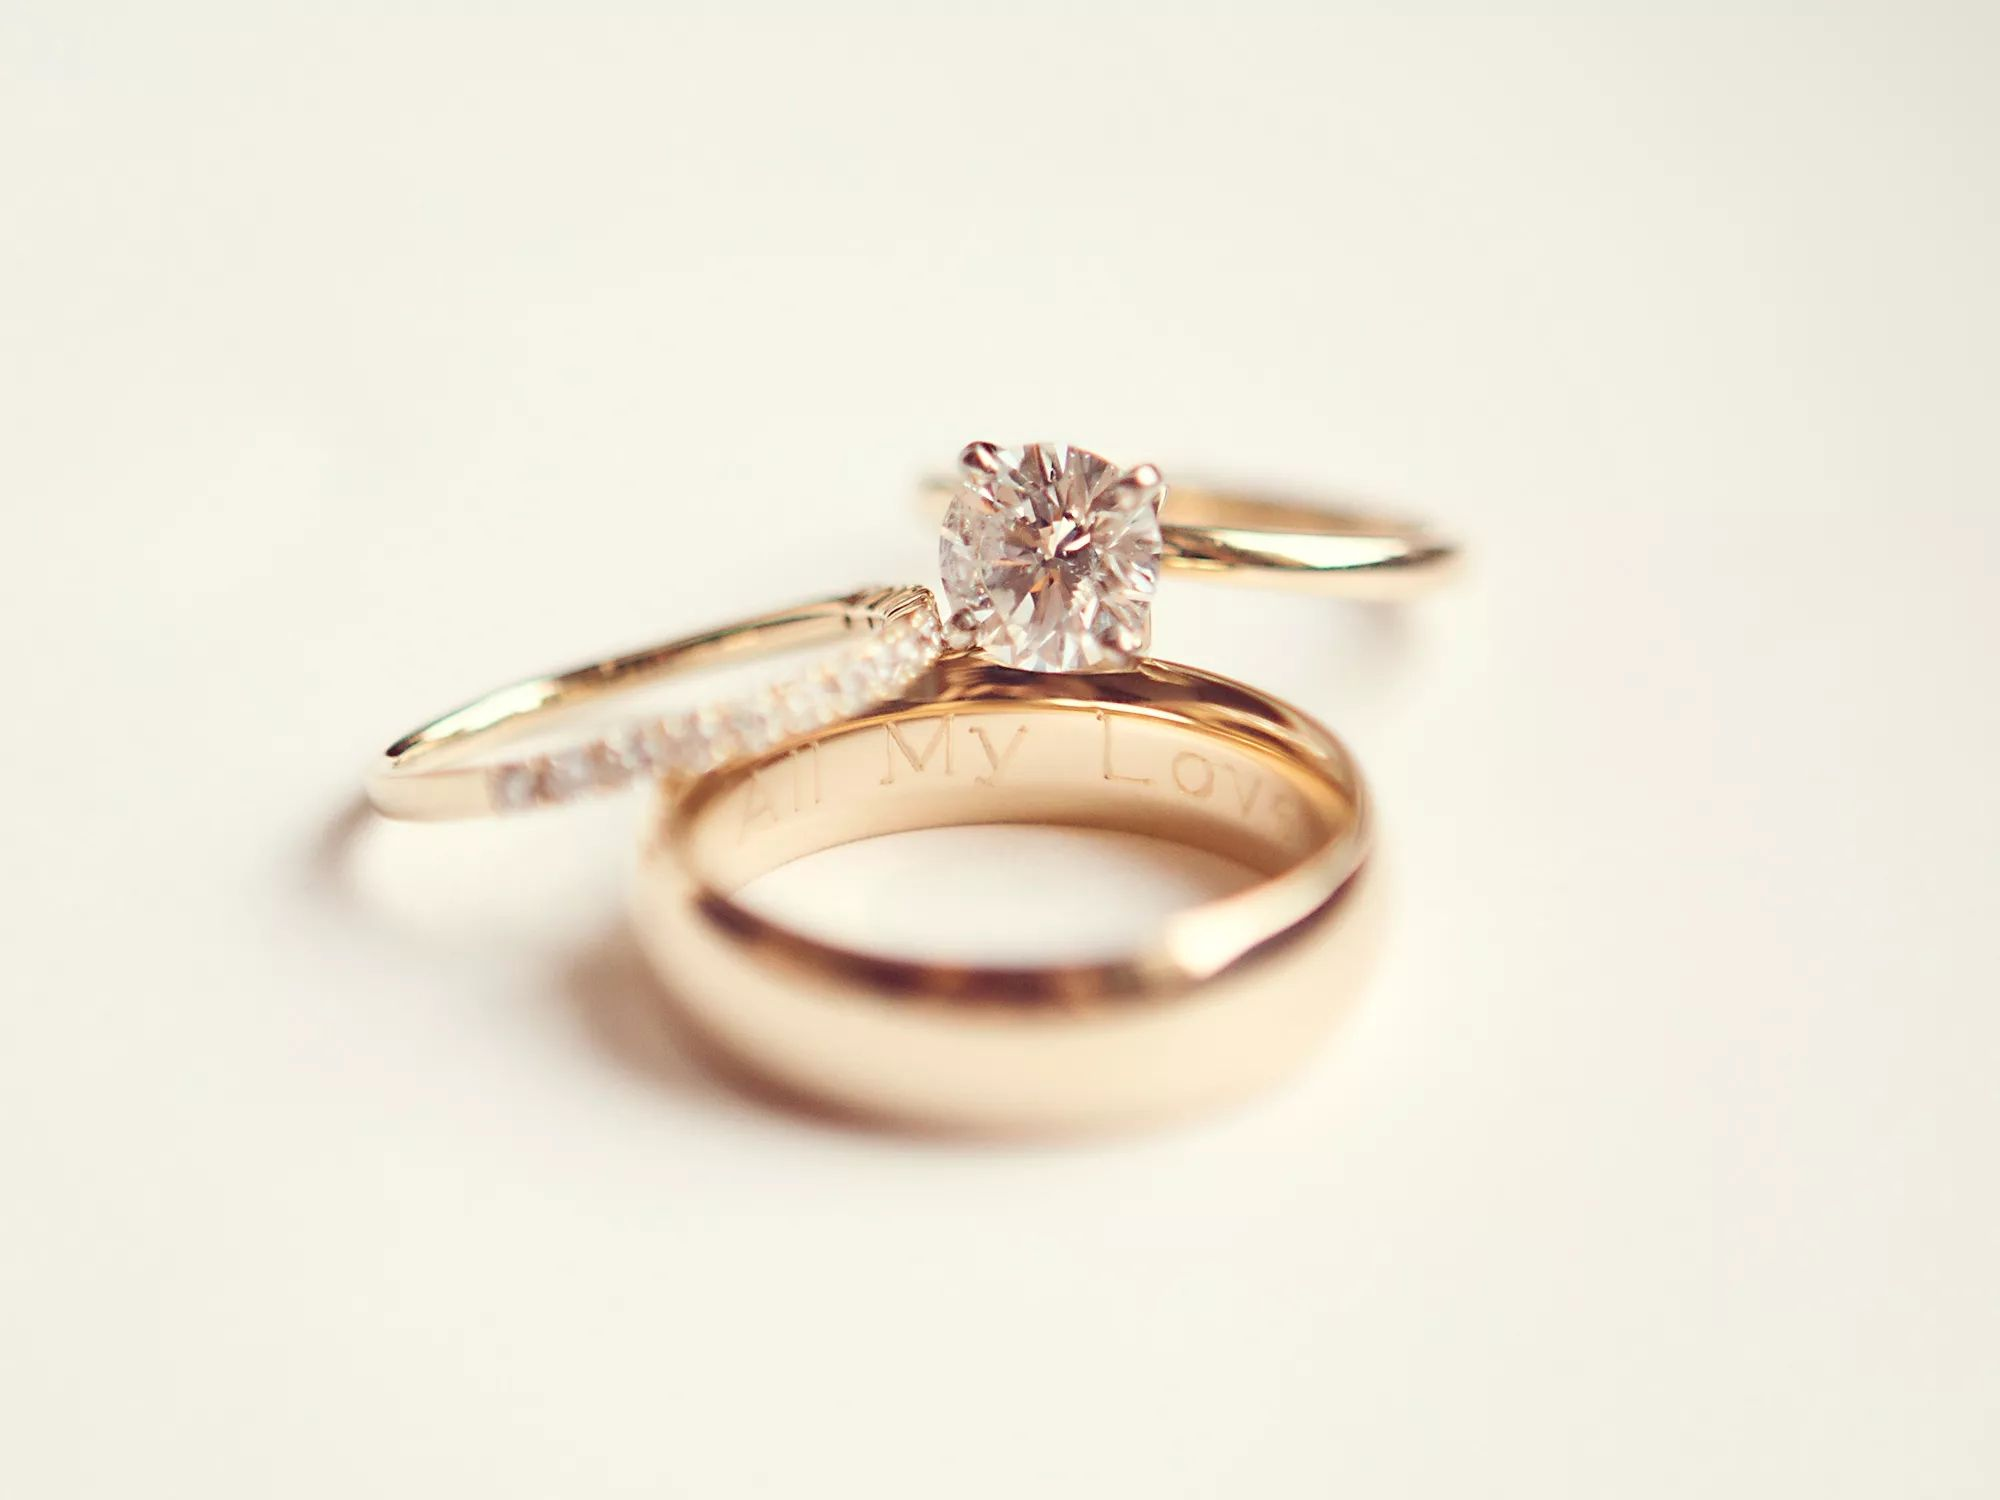 Pin By Janelle Thornton On Rings Pinterest Wedding Ring